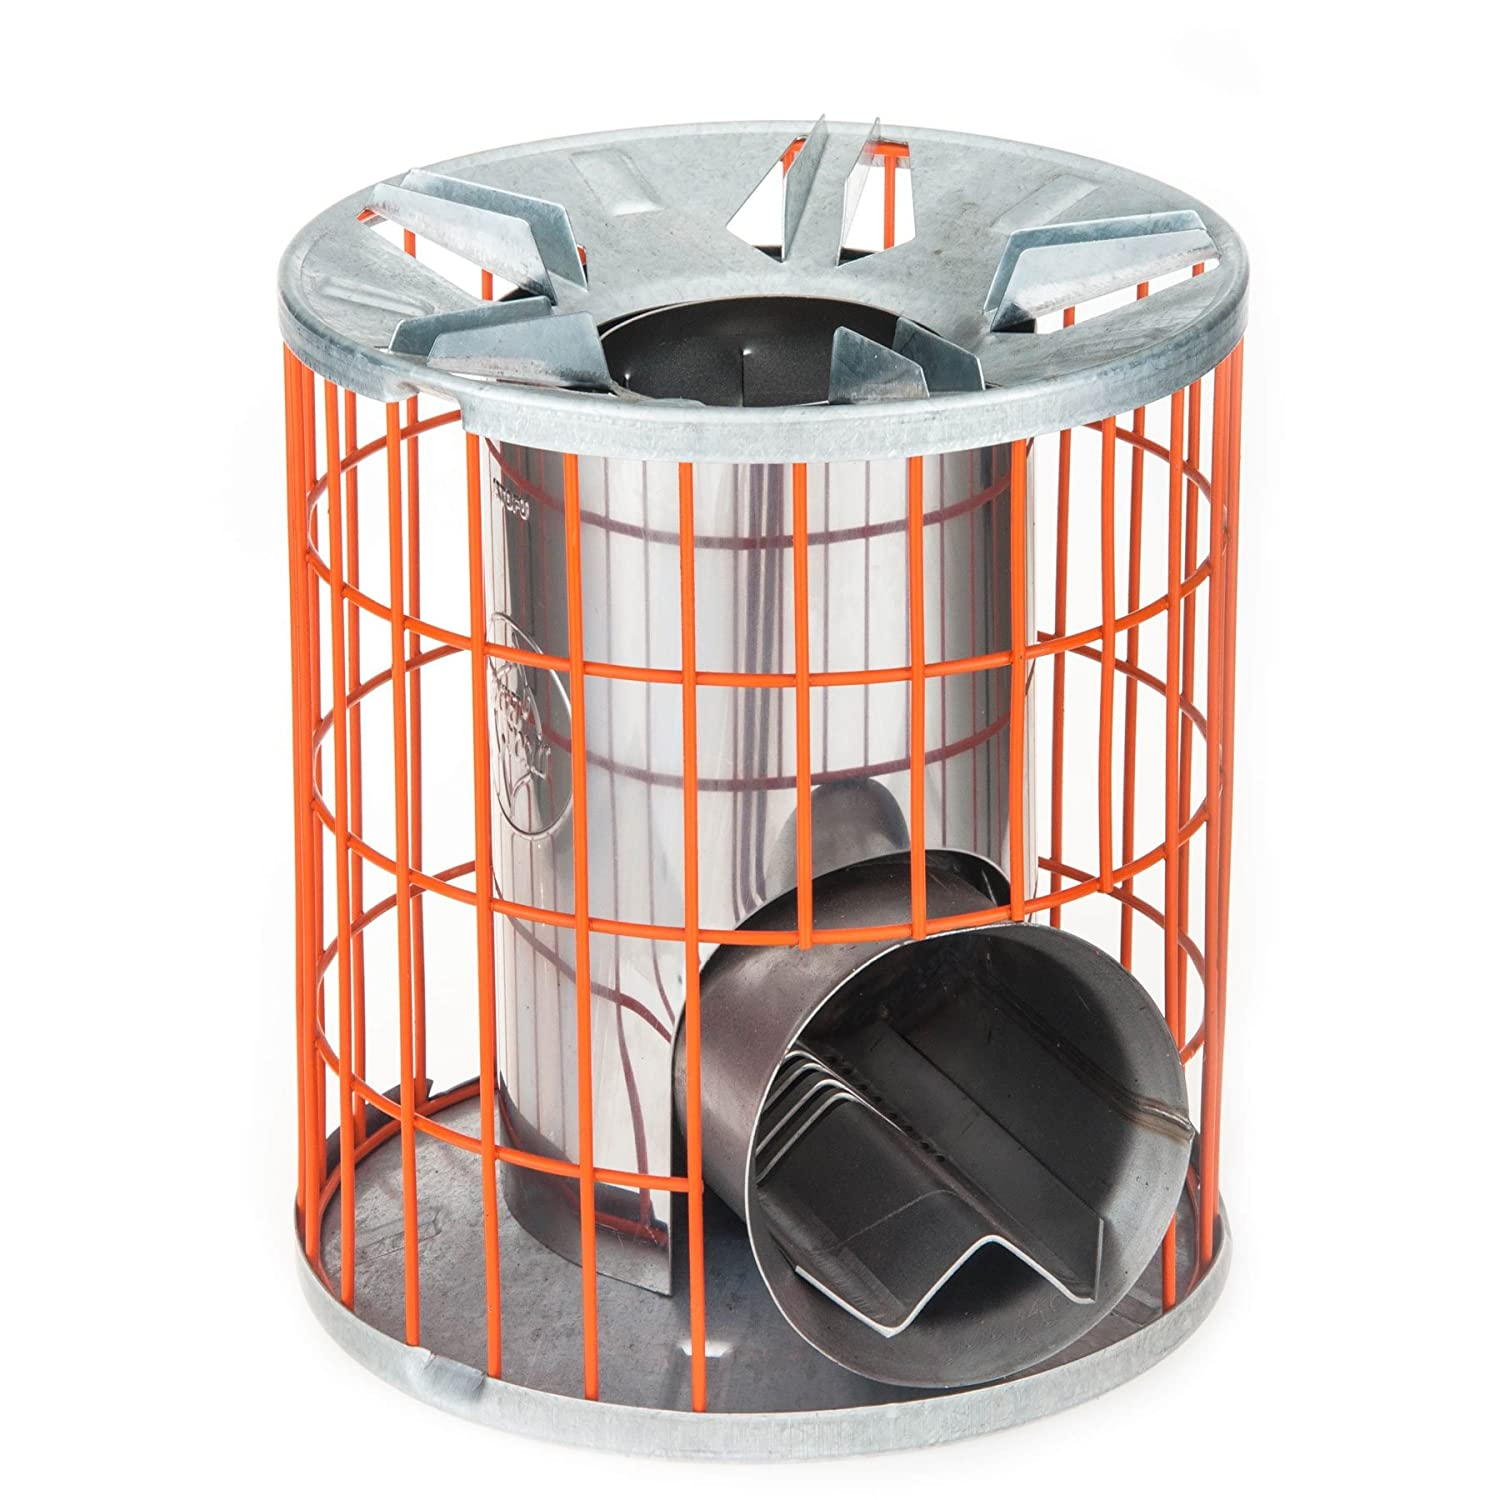 Anevay Horizon Stove : multi-fuel ROCKET stove: Amazon.co.uk ...